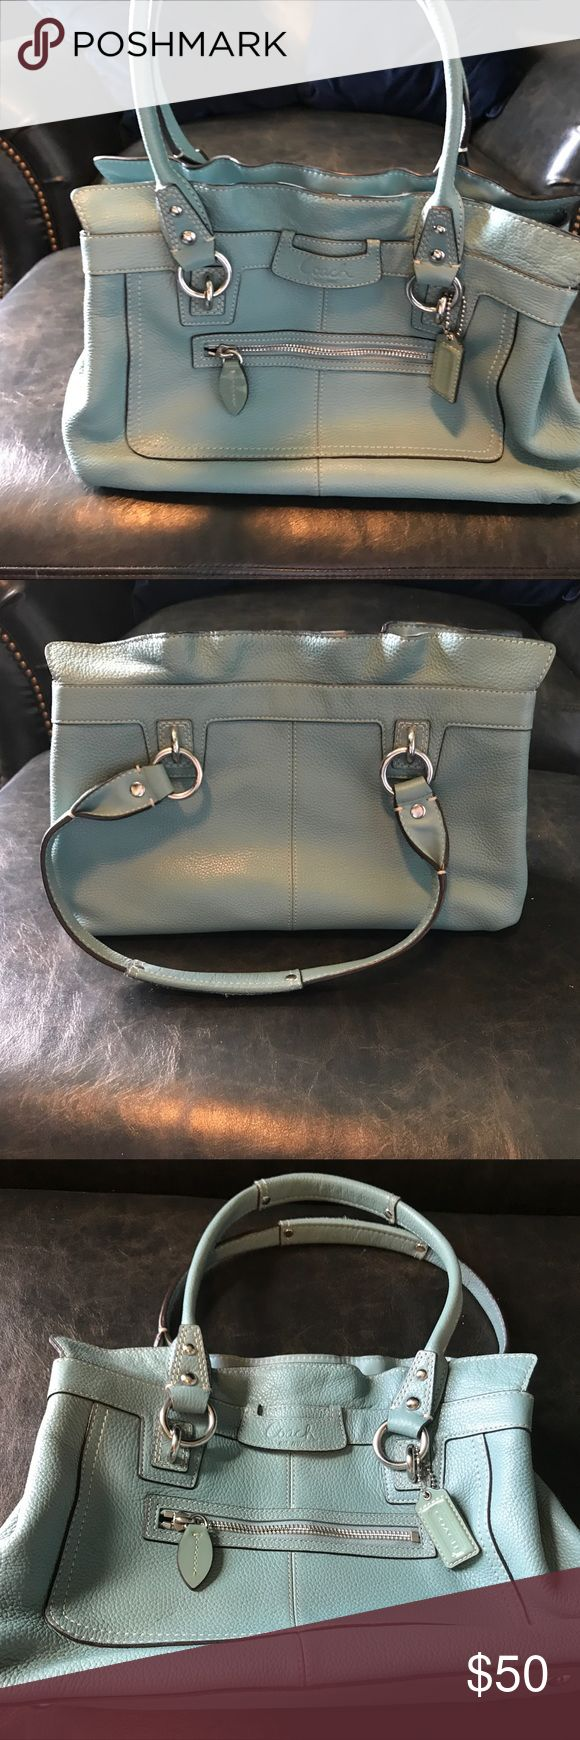 Coach teal pebbled leather tote. Gently used teal tote with supple, pebbled leather and a dark chocolate lining. Factory. Coach Bags Totes